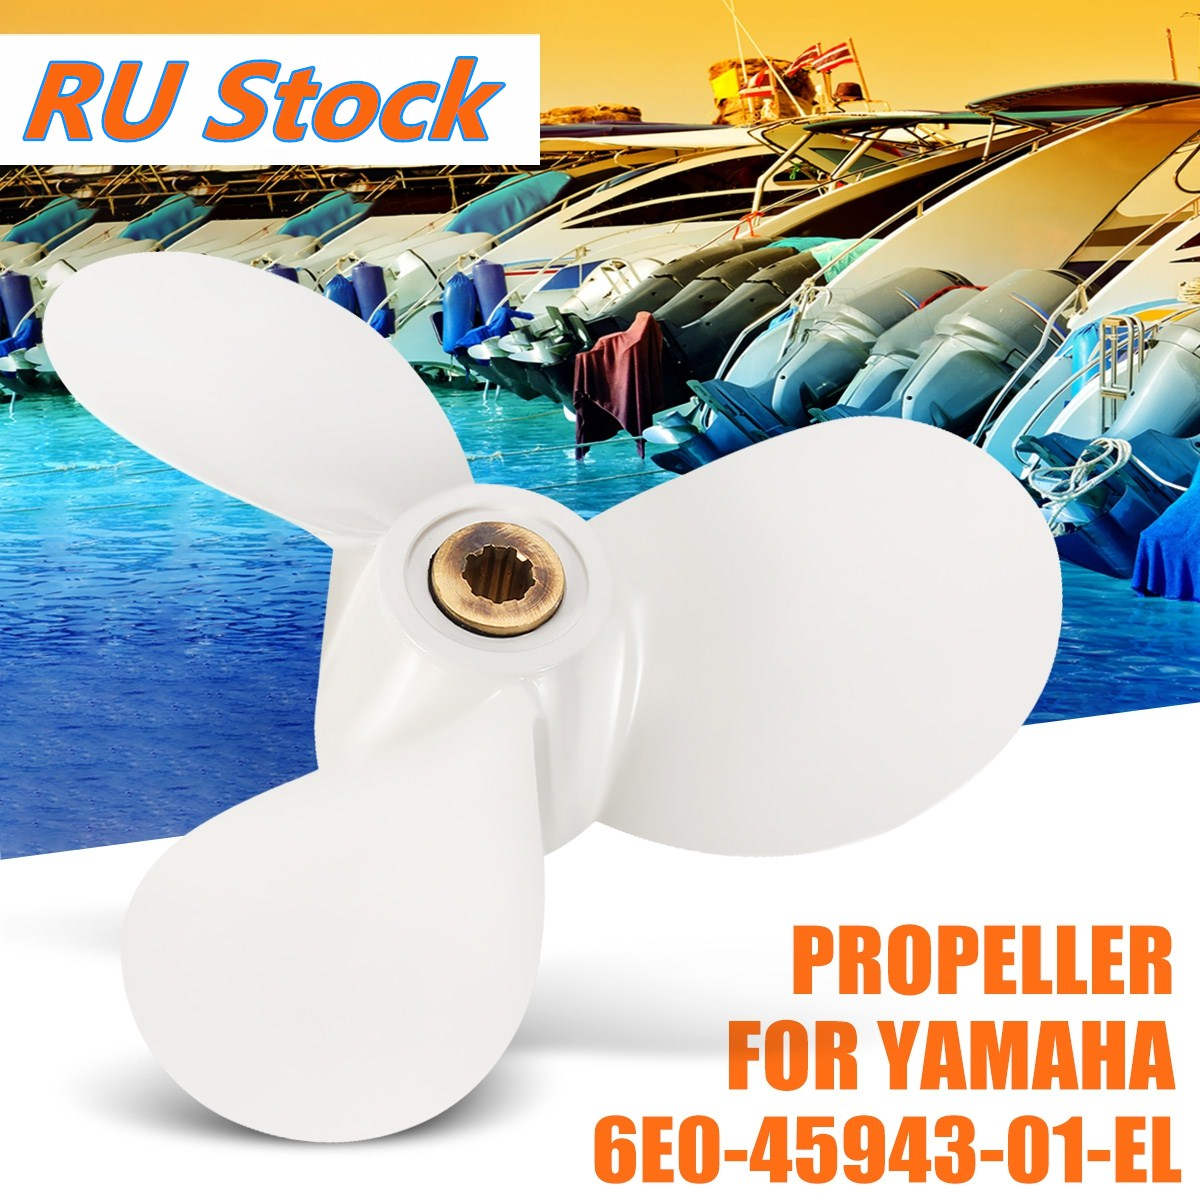 1pcs Boat Motors Marine Propellers For Yamaha Outboard 4hp 5hp 6hp Engine 71/2x 7-ba #6e0-45943-01-el Radius 9.5 Cm White Colour Boat Parts & Accessories